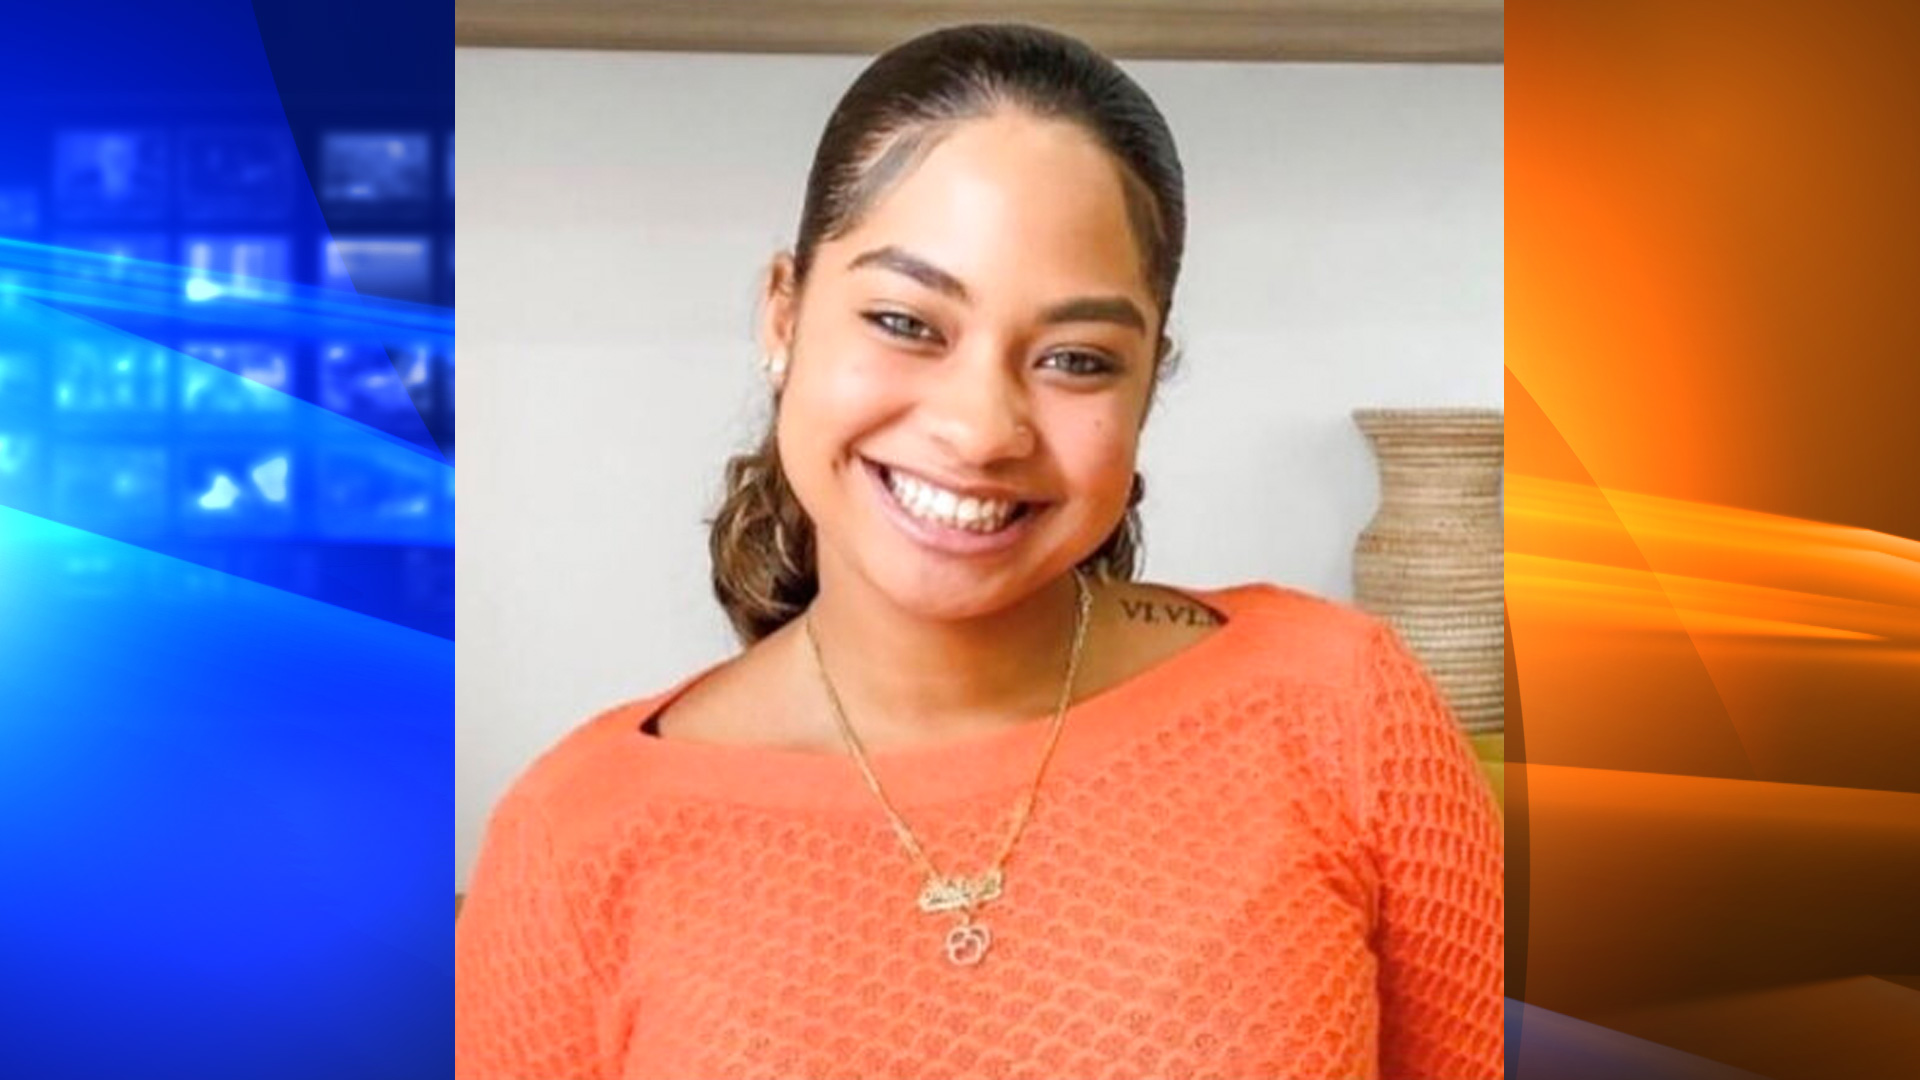 This image provided by the Orange County Sheriff's Office in Orlando, Fla., shows a part of a missing persons poster with an image of missing student Miya Marcano.